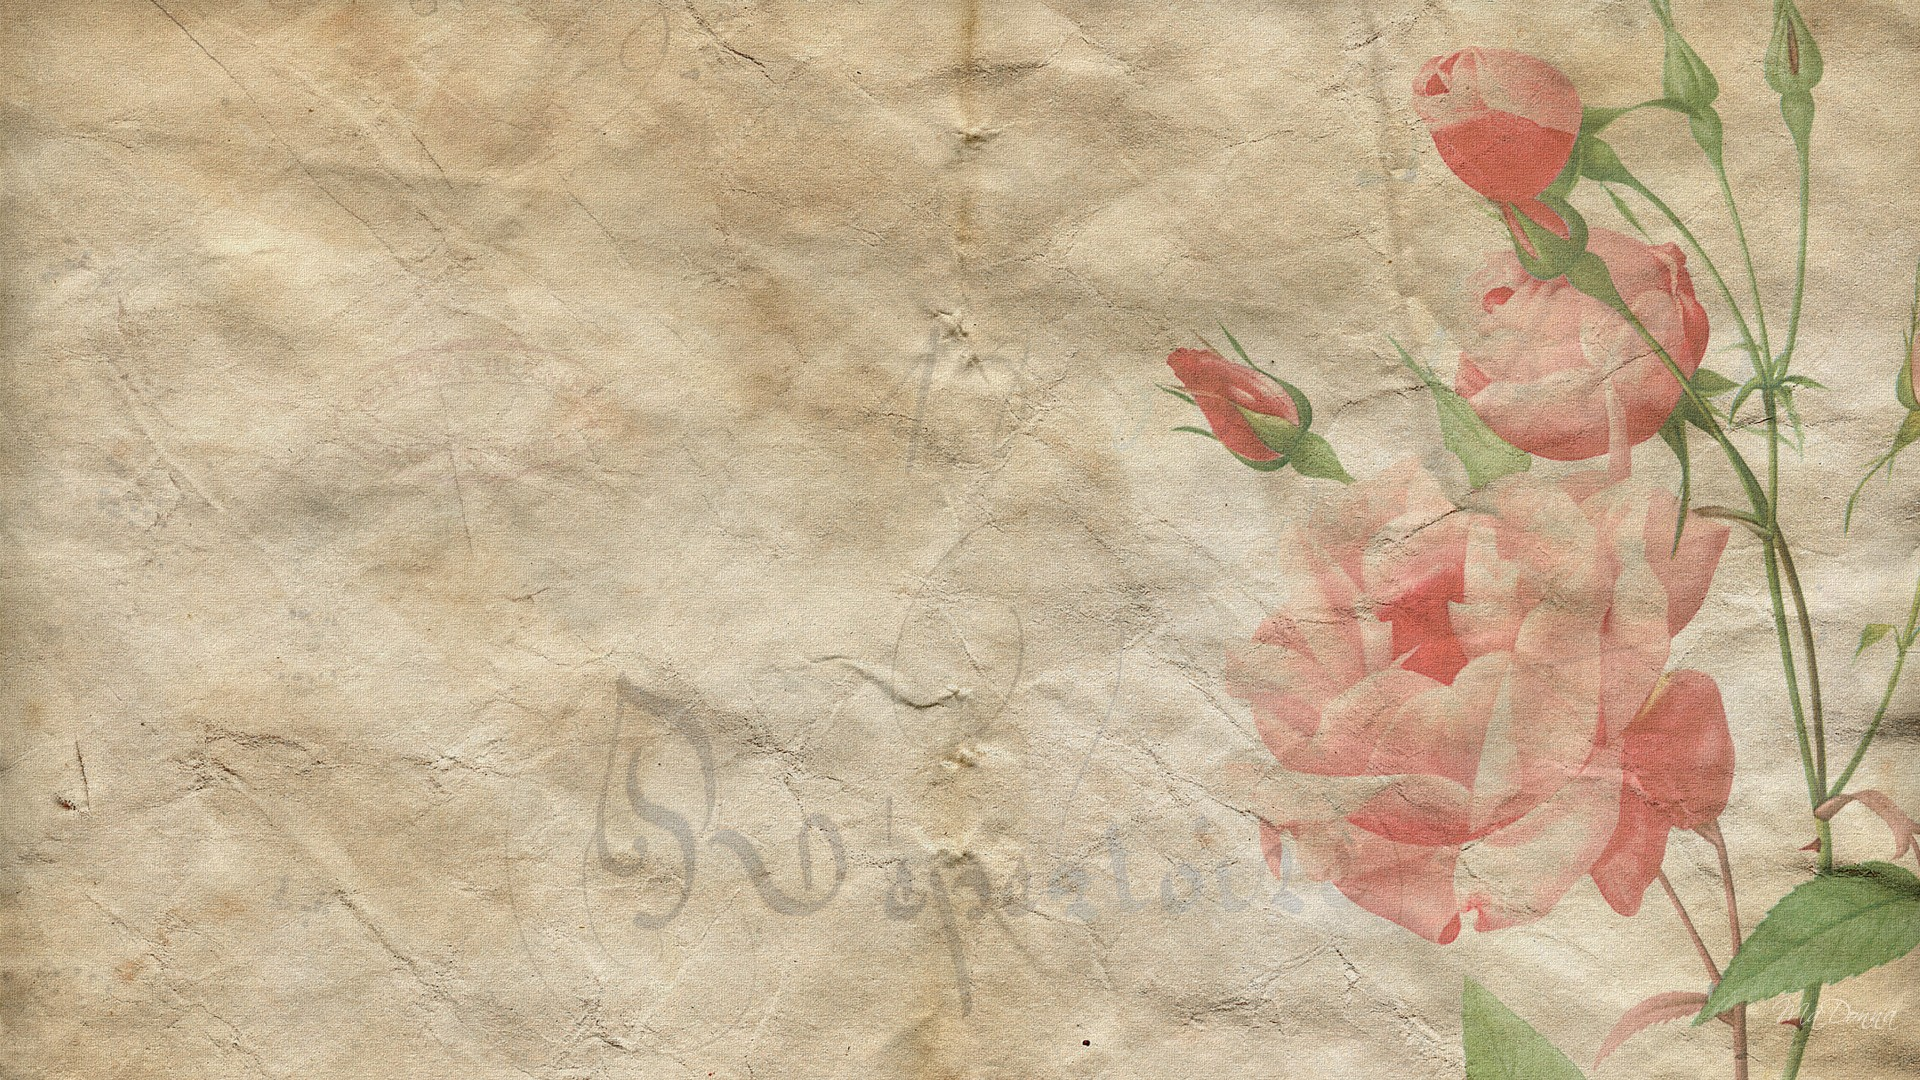 Free download Vintage Backgrounds Download [1920x1080] for